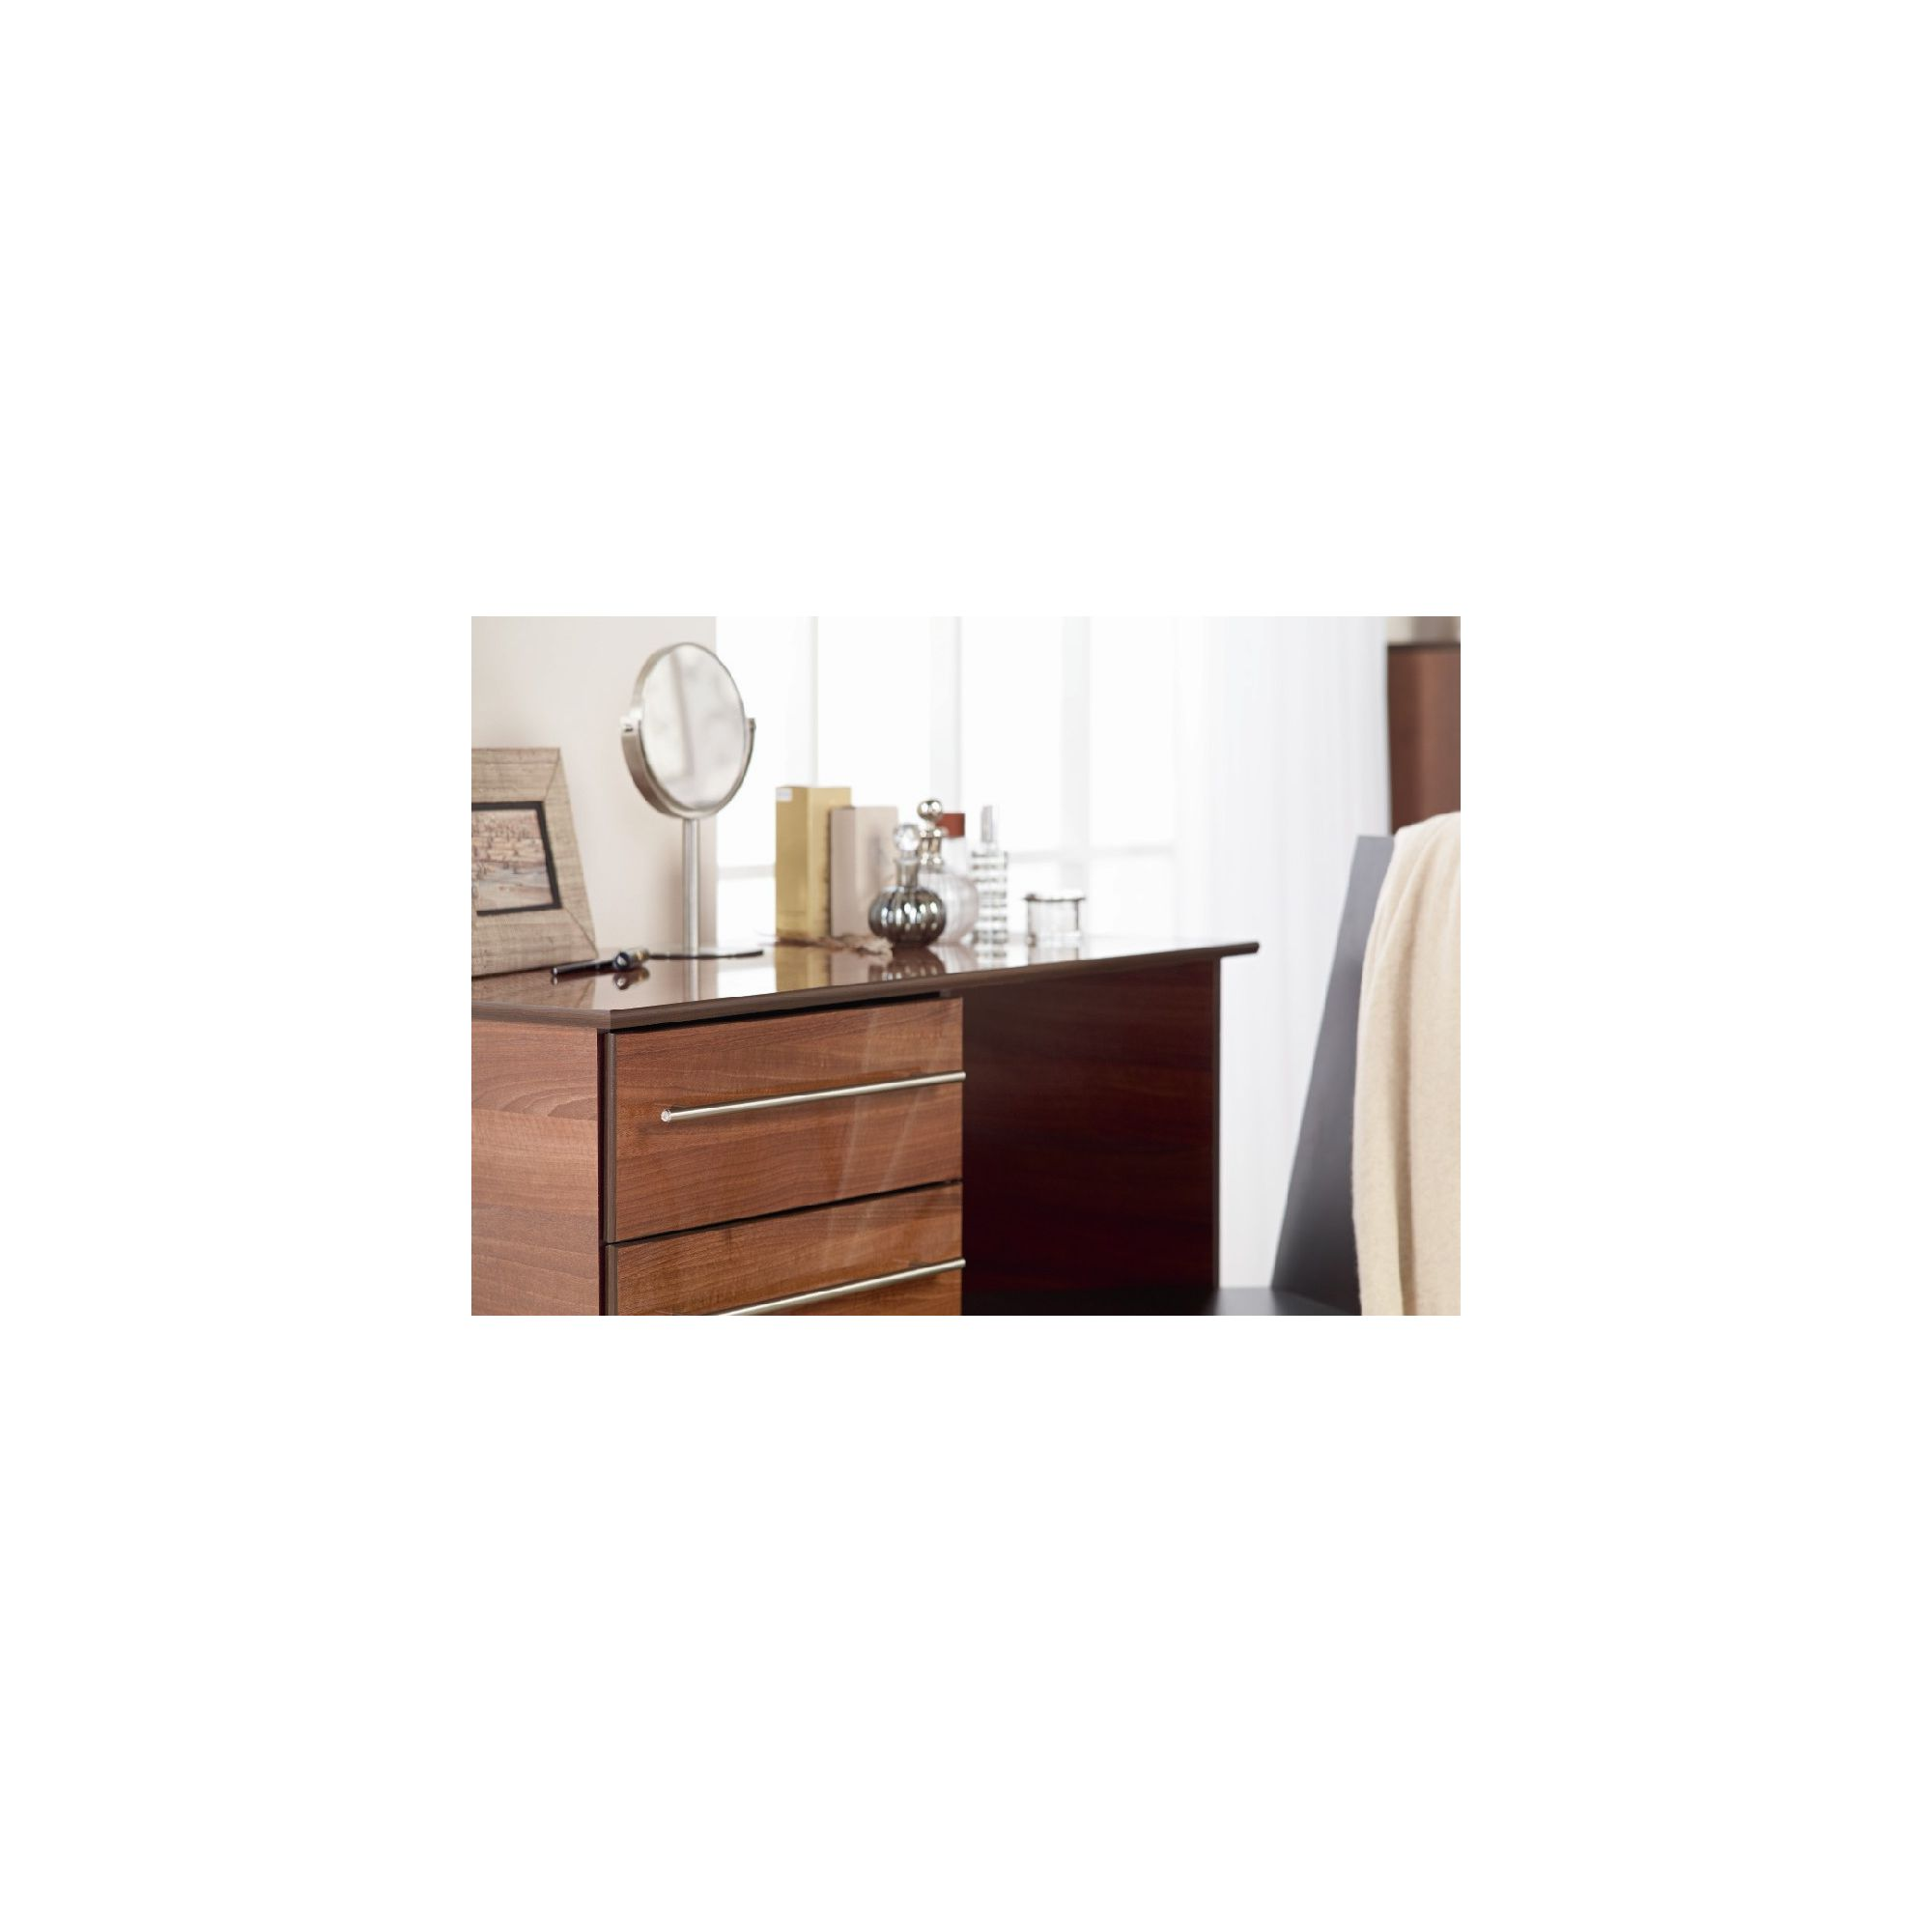 Ideal Furniture New York Single Dressing Table - American Walnut at Tesco Direct